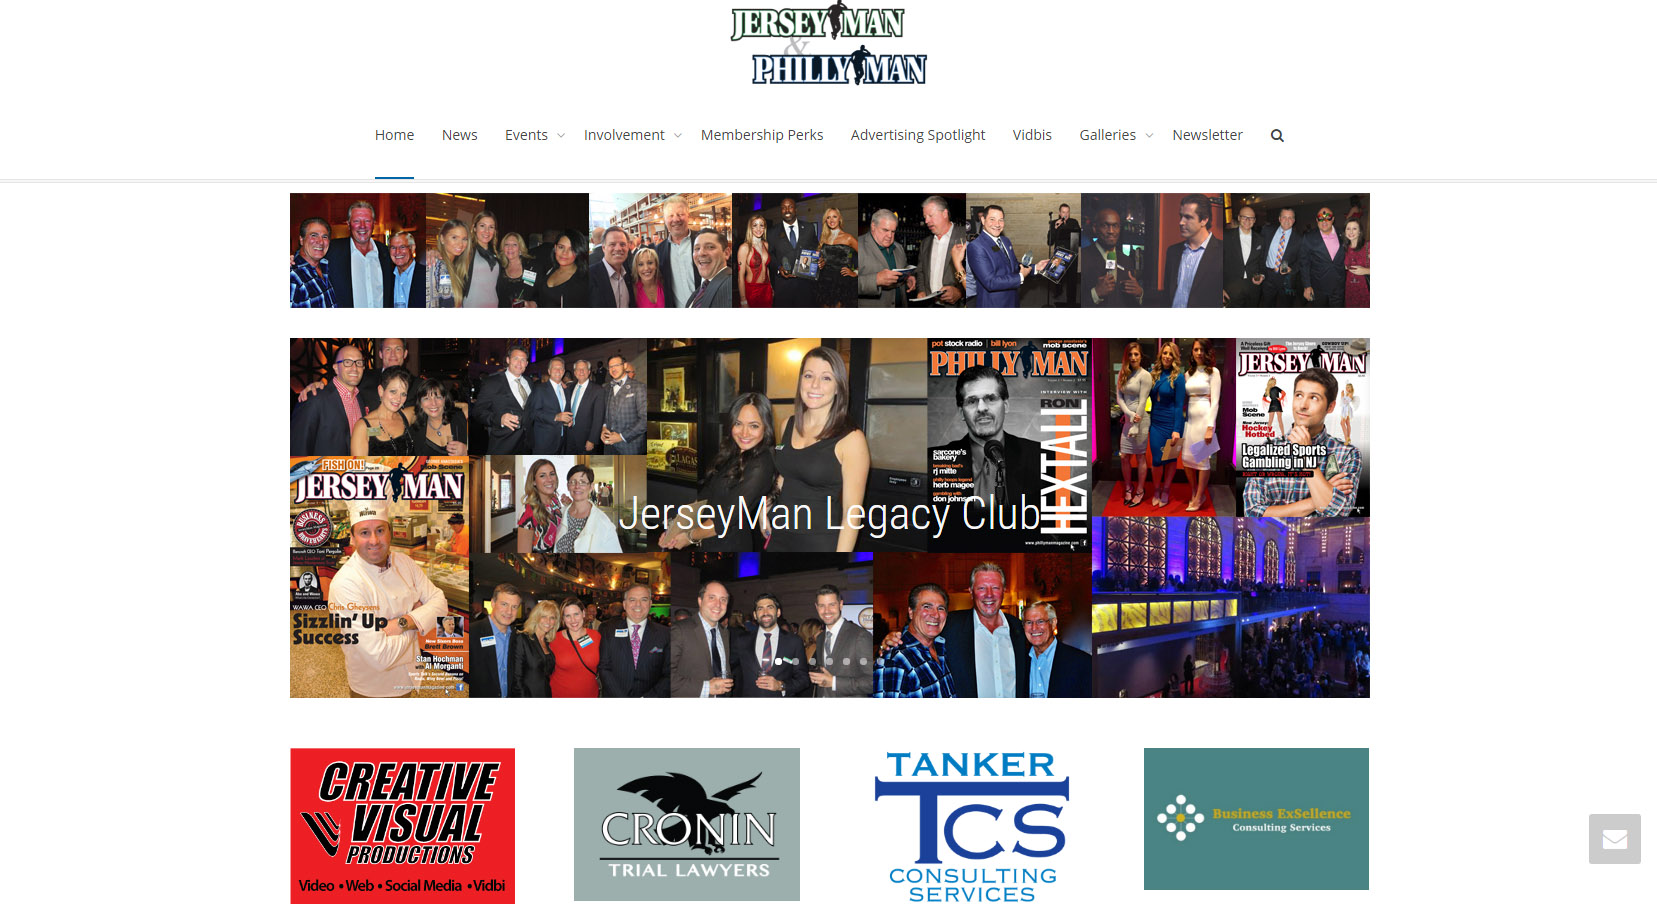 website design for JerseyMan Legacy club from Creative Visual Productions